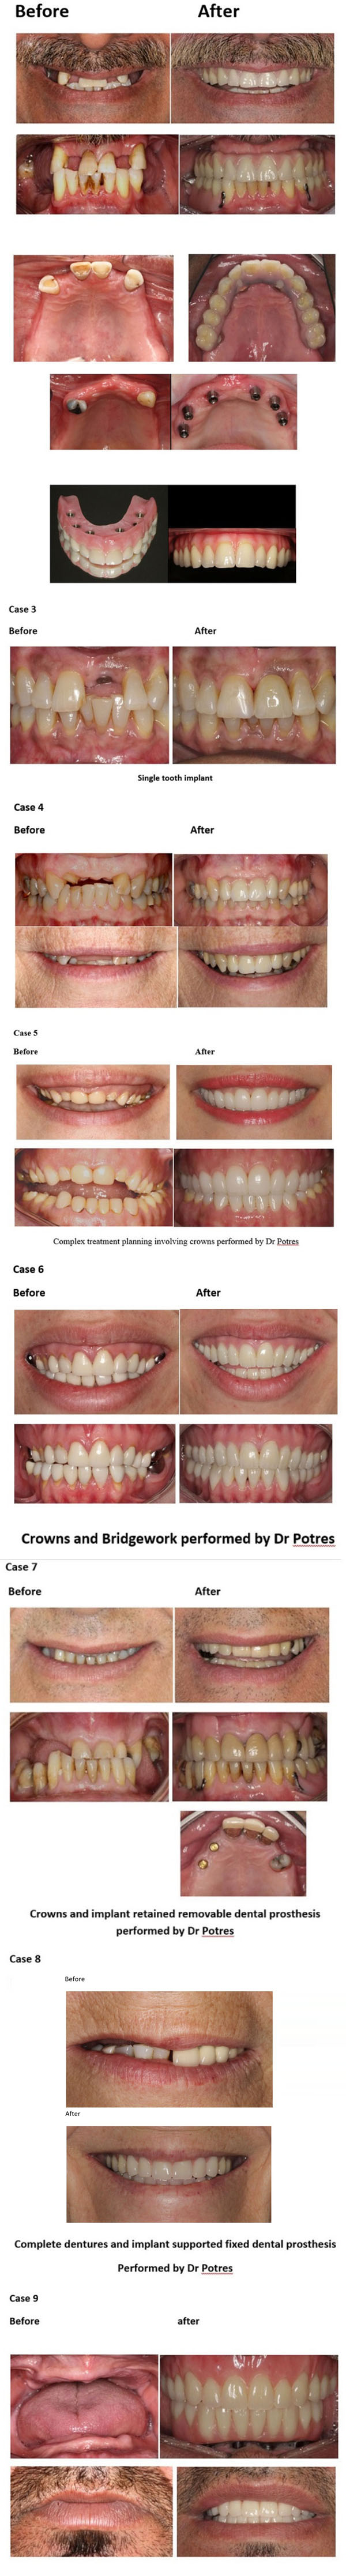 Real cosmetic dentistry before and after photo's new